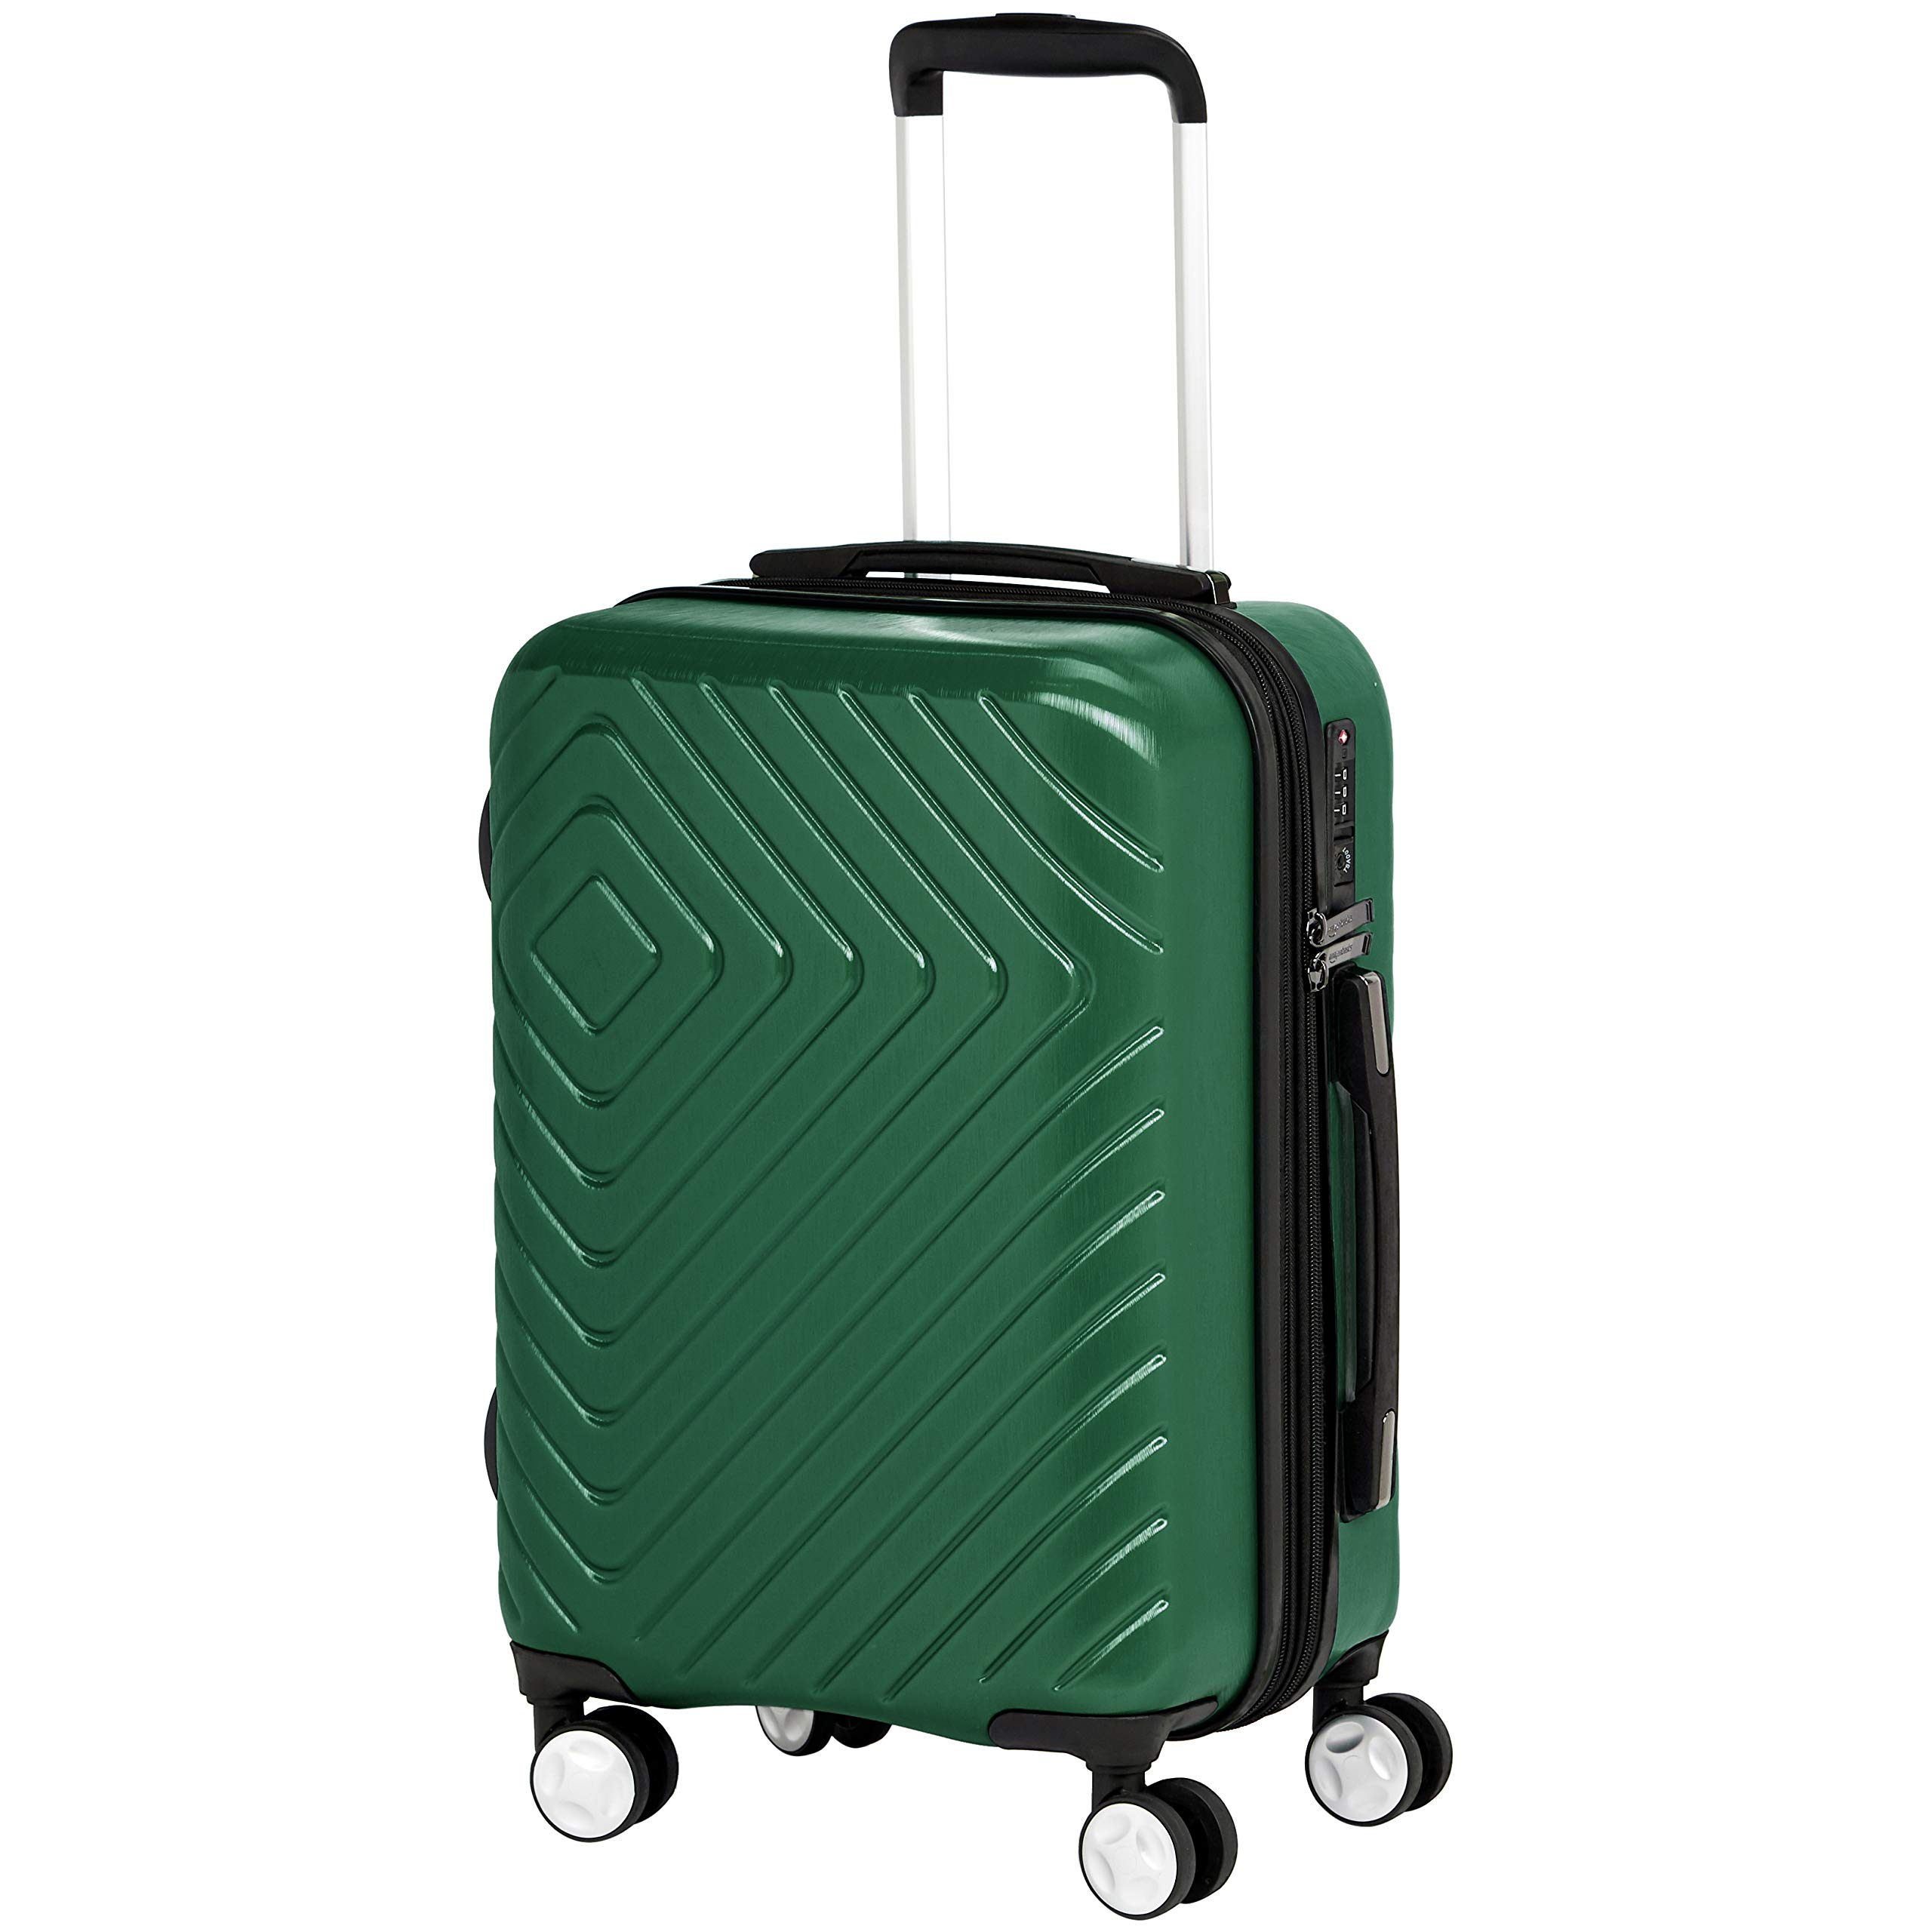 AmazonBasics Geometric Luggage Expandable Suitcase